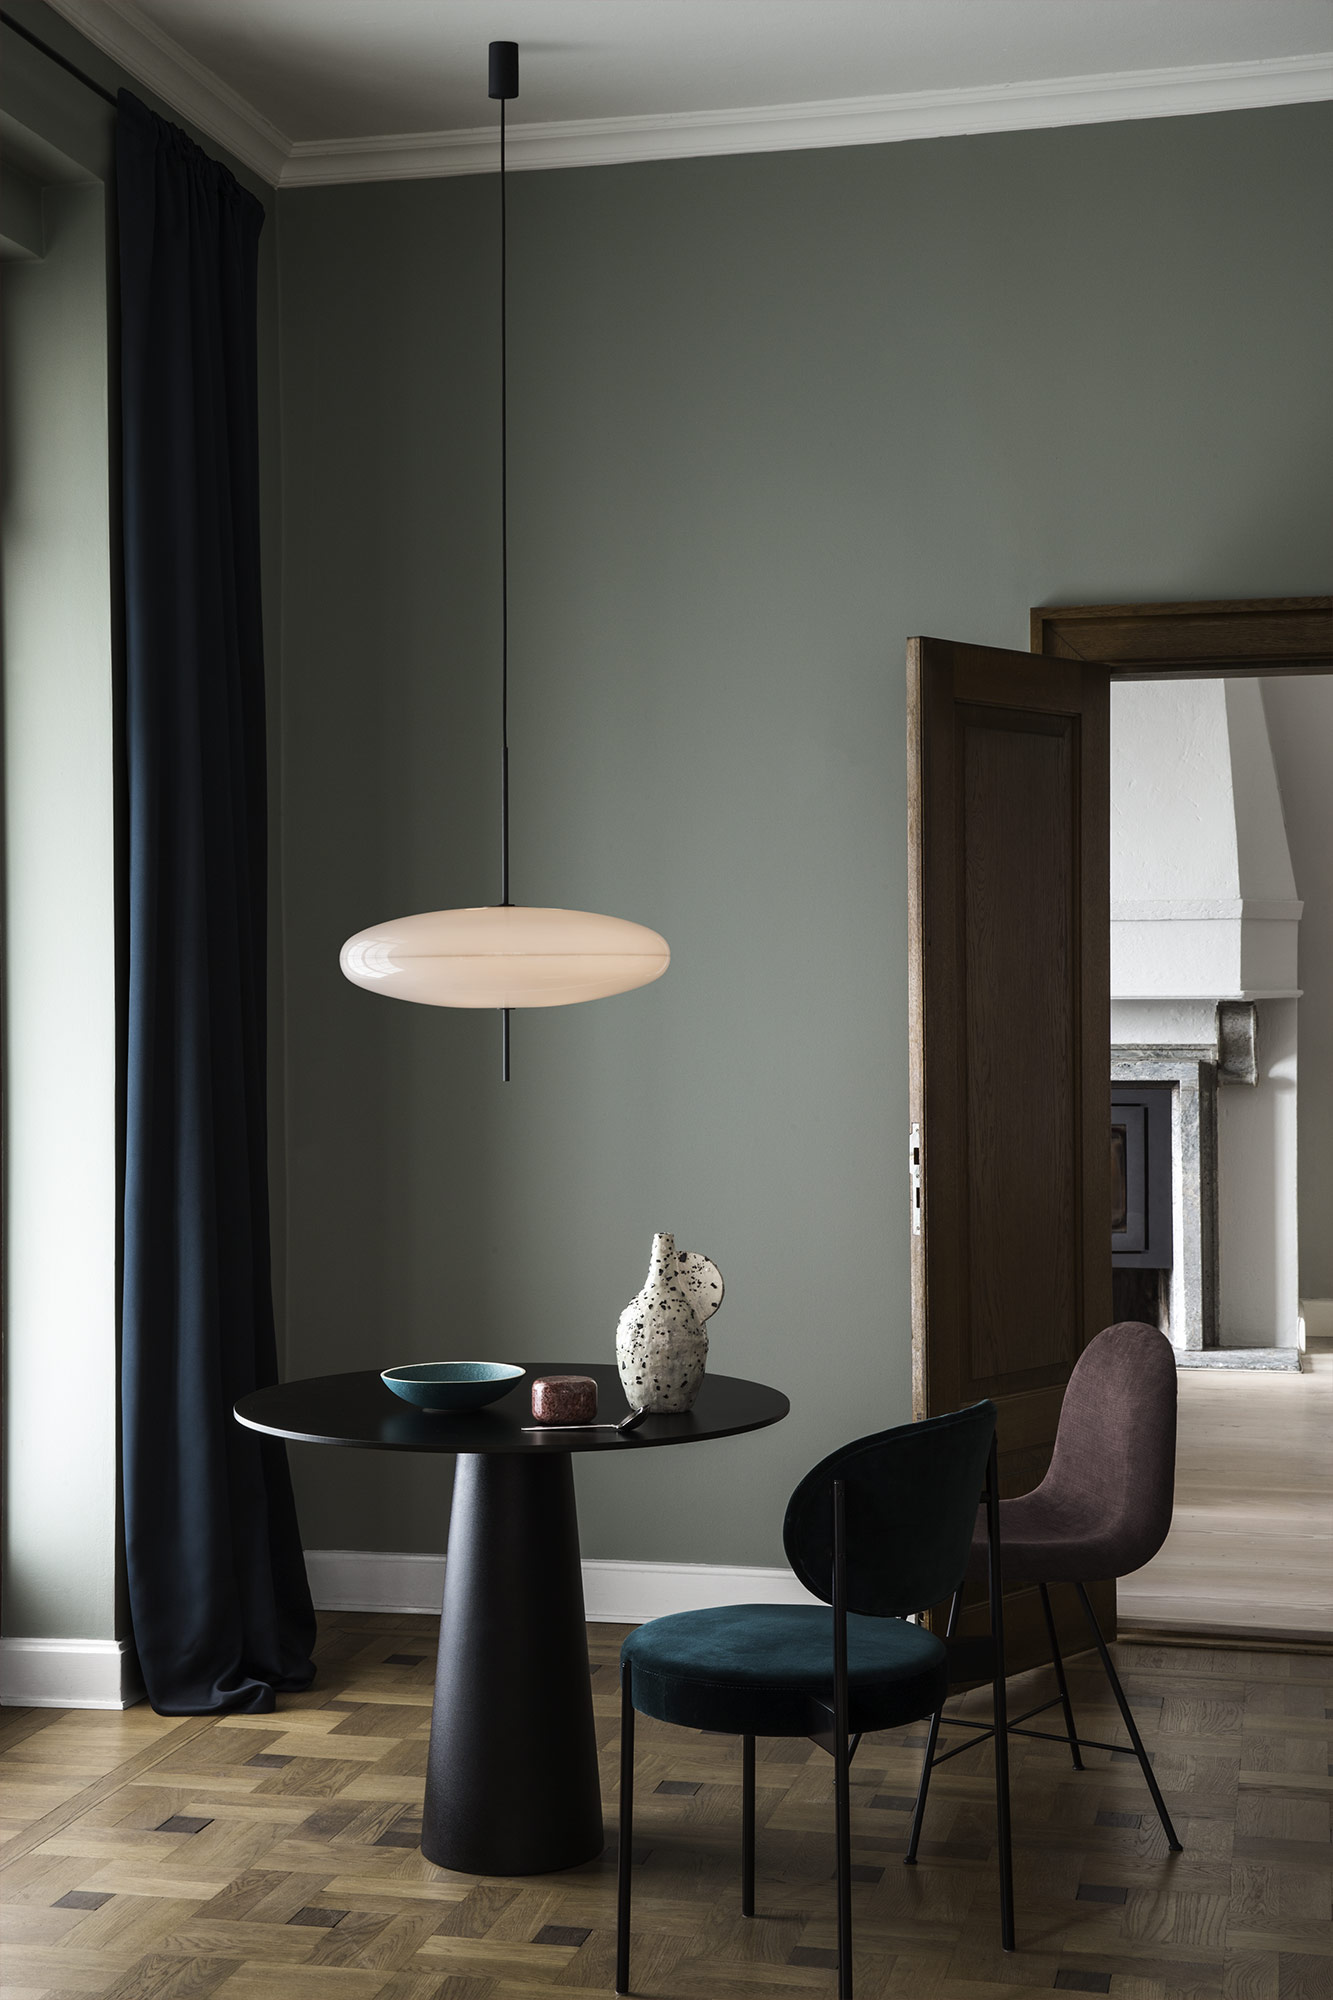 Flos With Sarfatti By Astep Hub Furniture Lighting Living